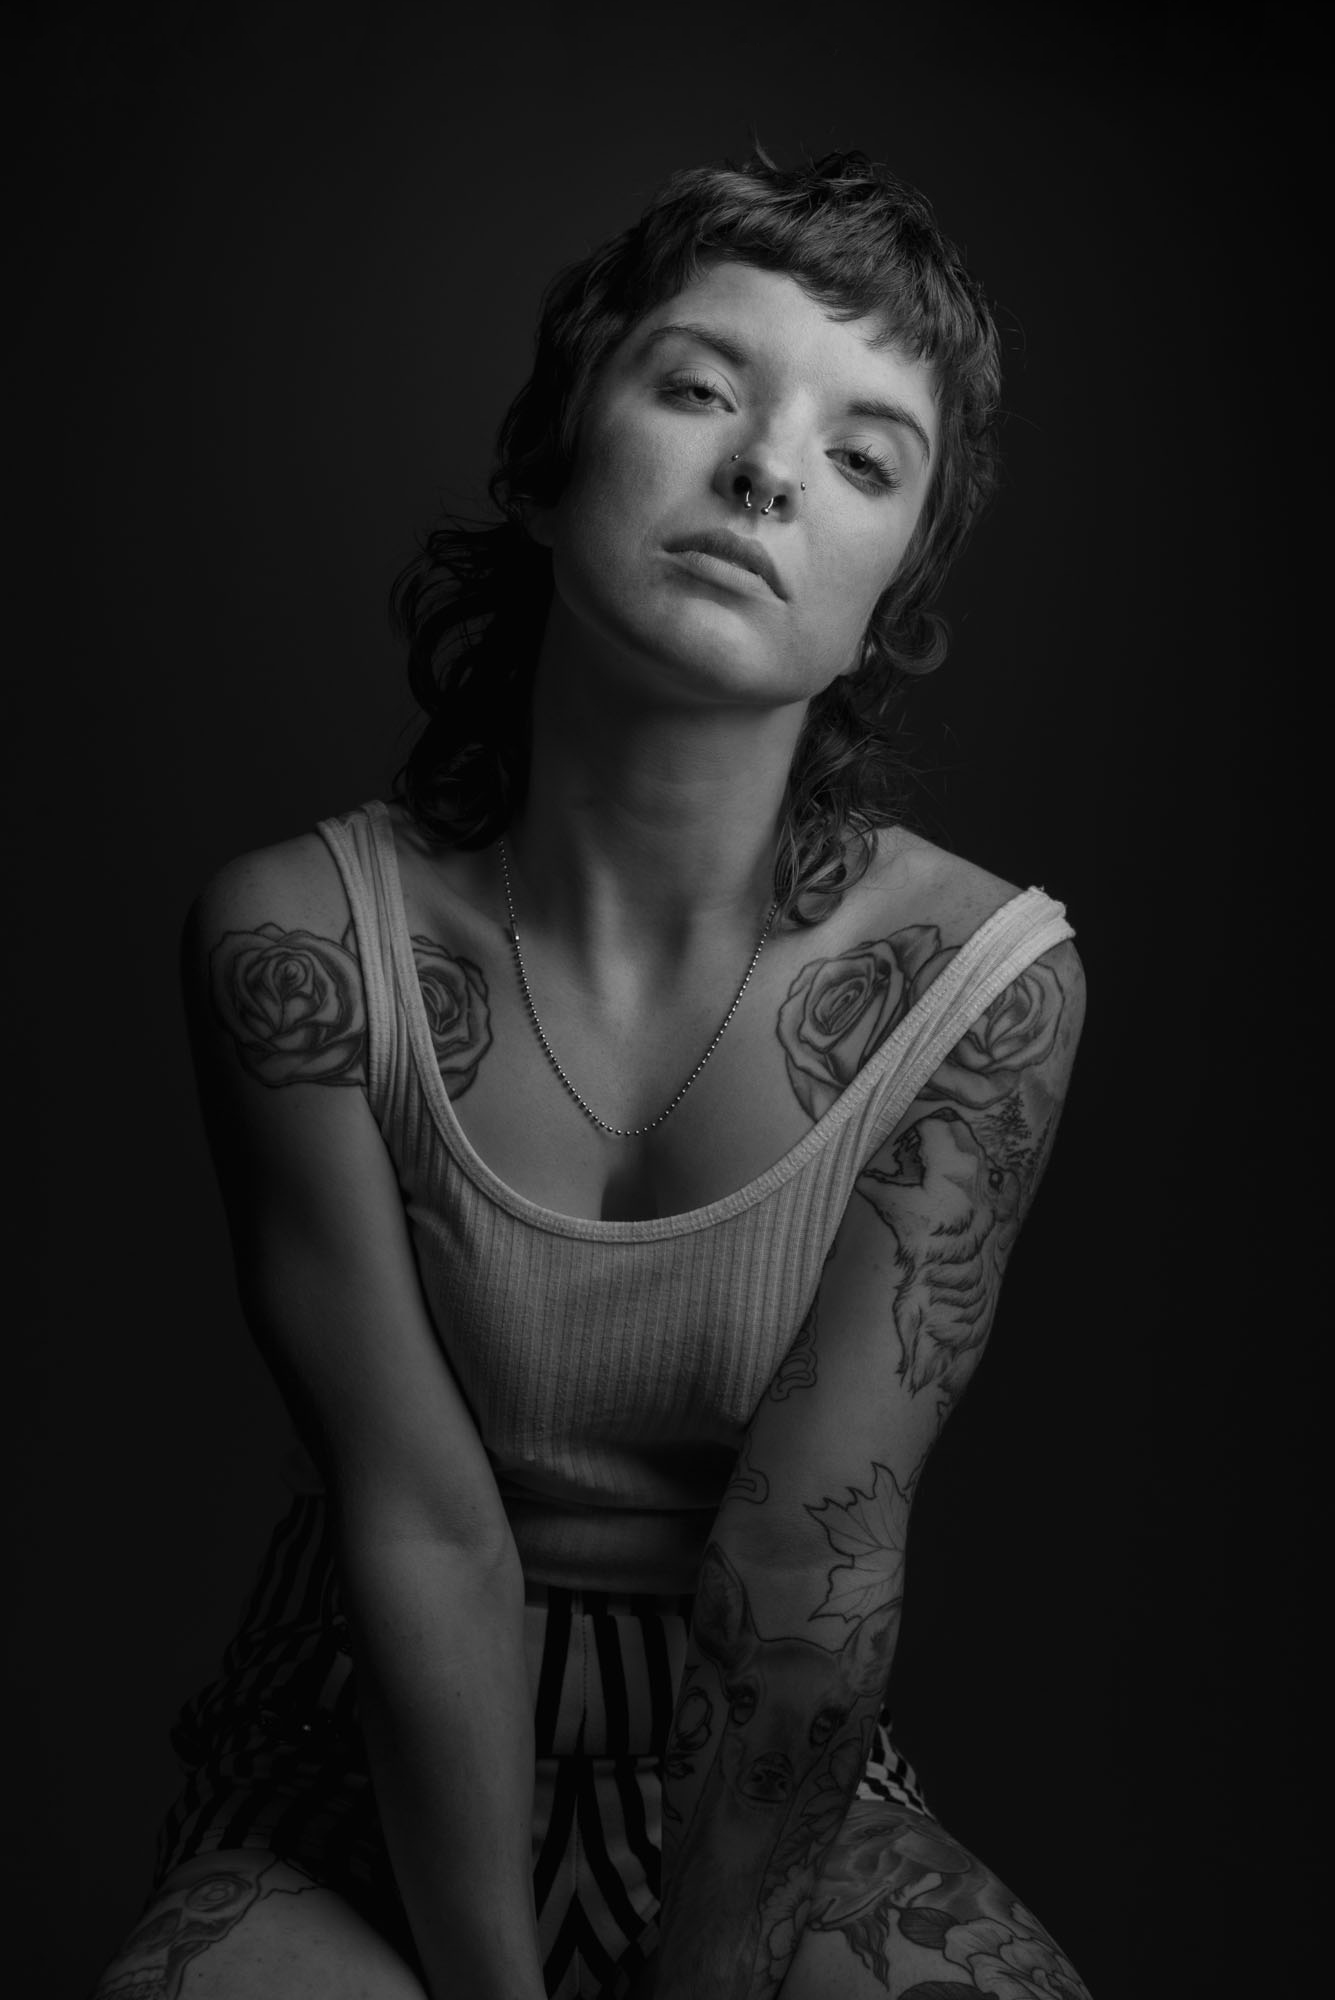 black and white portrait of Maddie wearing a white tank top and pin striped shorts.